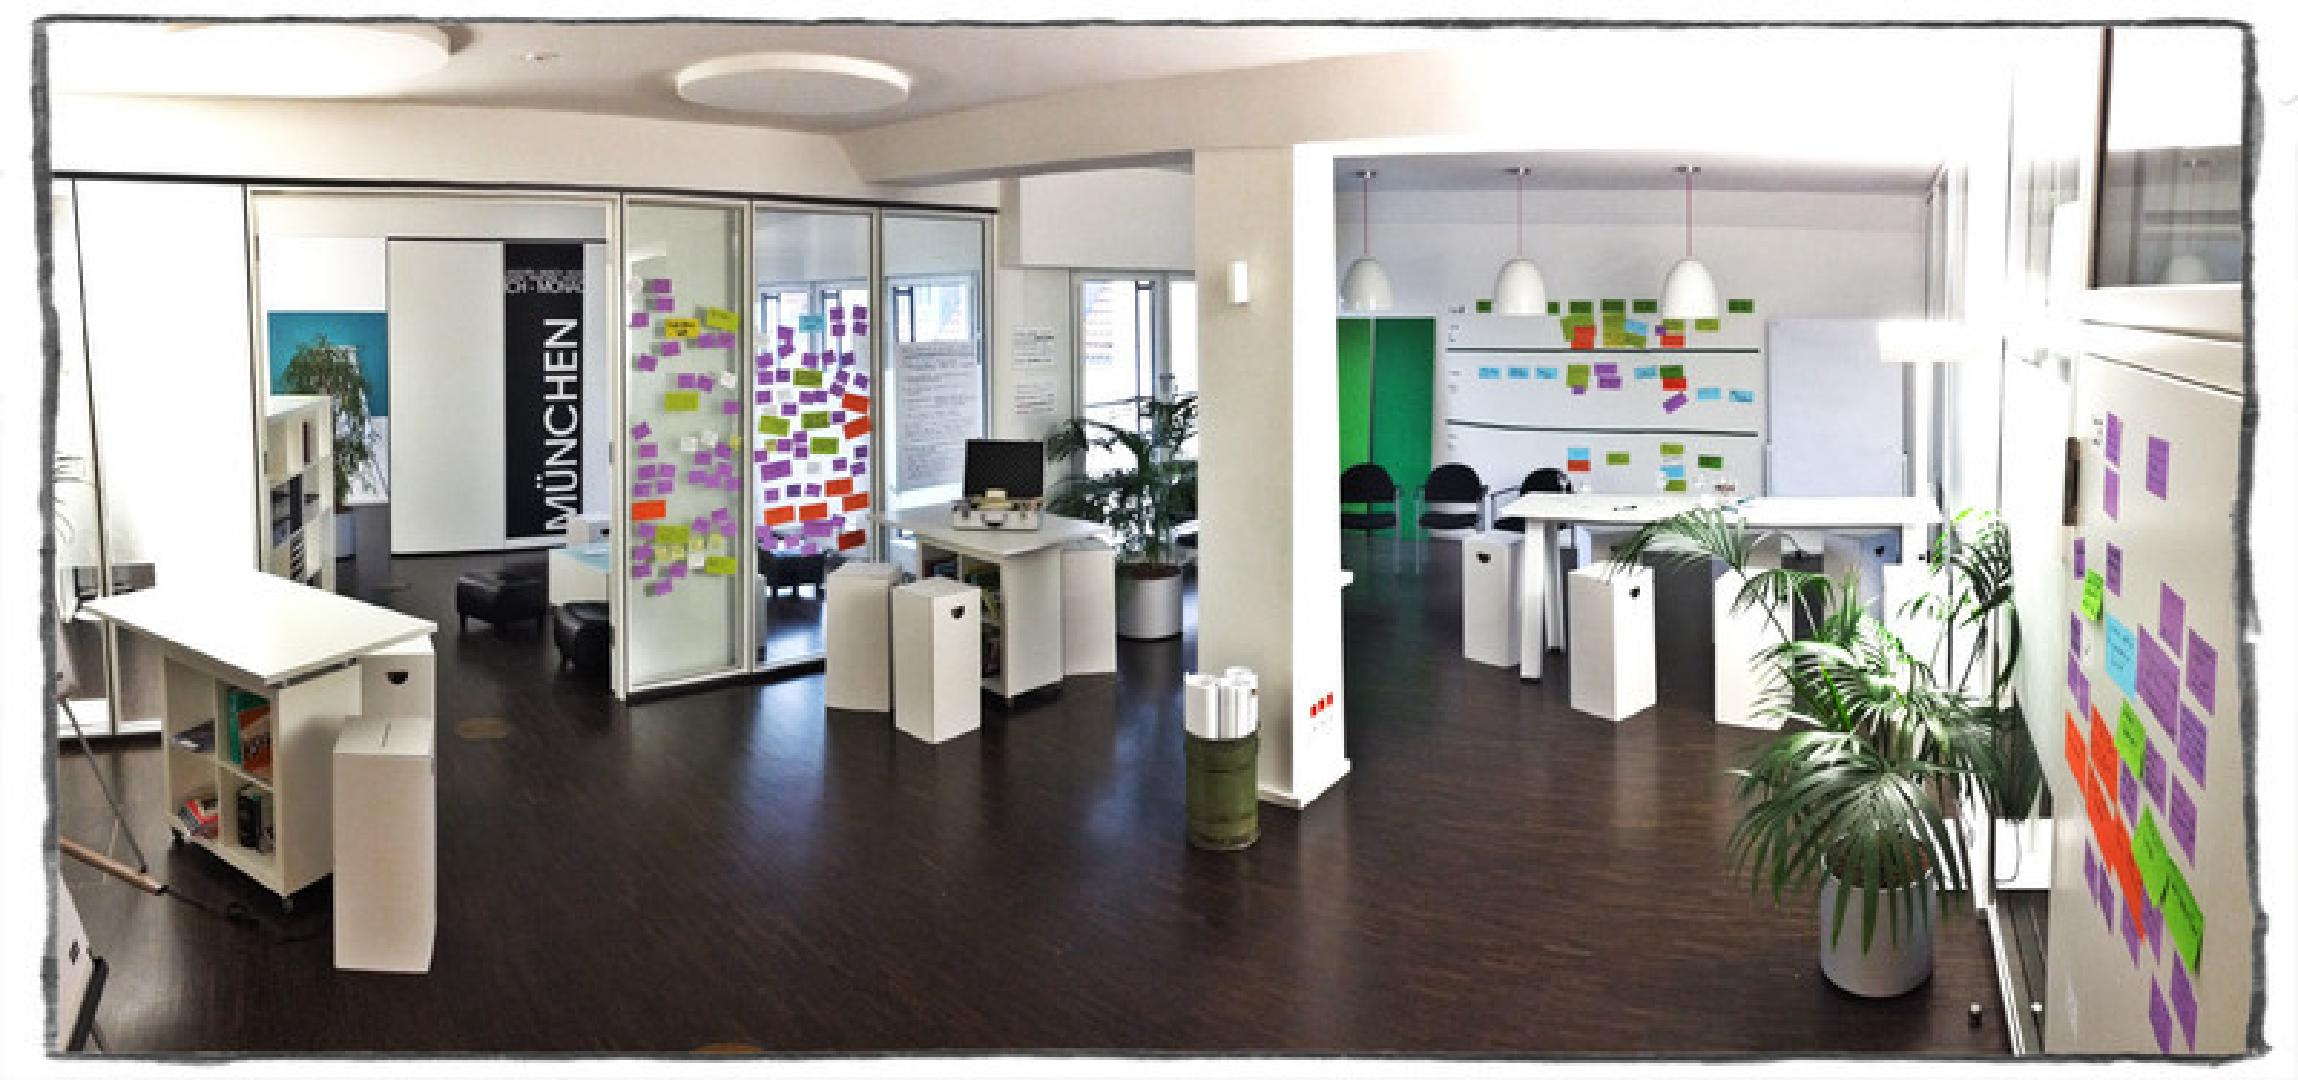 Picture 3 of allynet GmbH